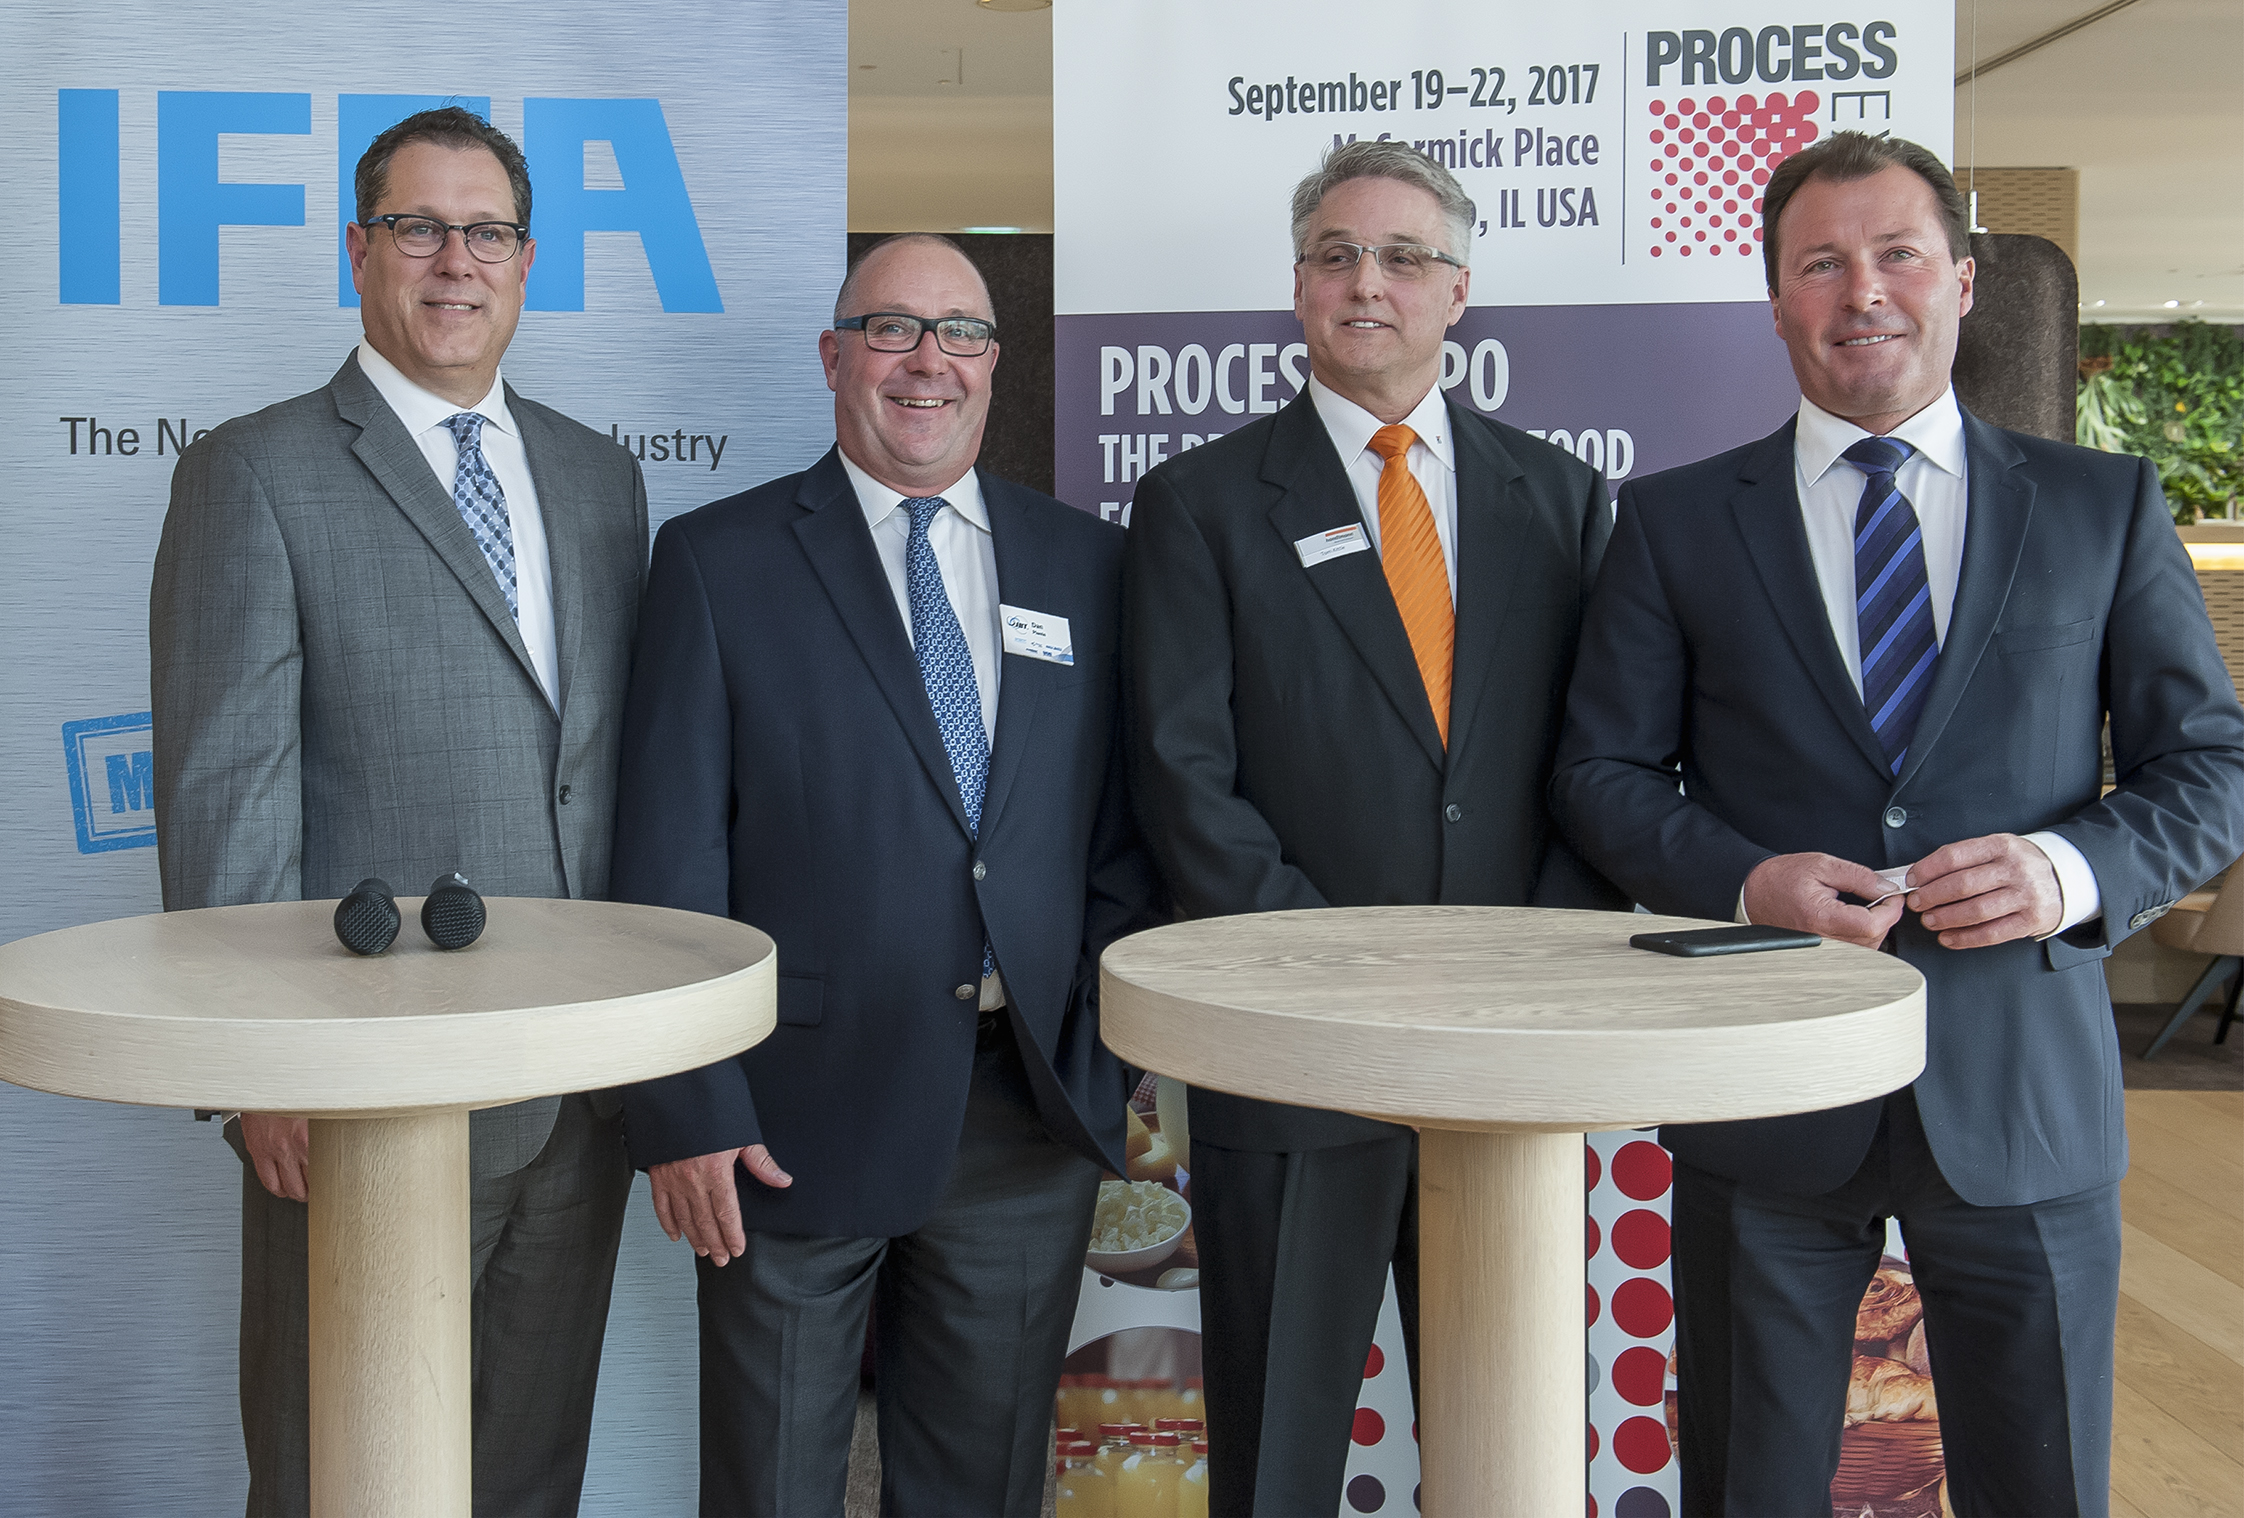 Process Expo: v.l.n.r.: f.l.t.r.: Gil Williams (President of Poly-clip System LLC US), Dan Plante (JBT, Dir. Sales & Marketing / N. America), Tom Kittle (President of Handtmann Inc. and Handtmann Canada Limited), Wolfgang Marzin (President and Chief Executive Officer (CEO) of Messe Frankfurt GmbH)